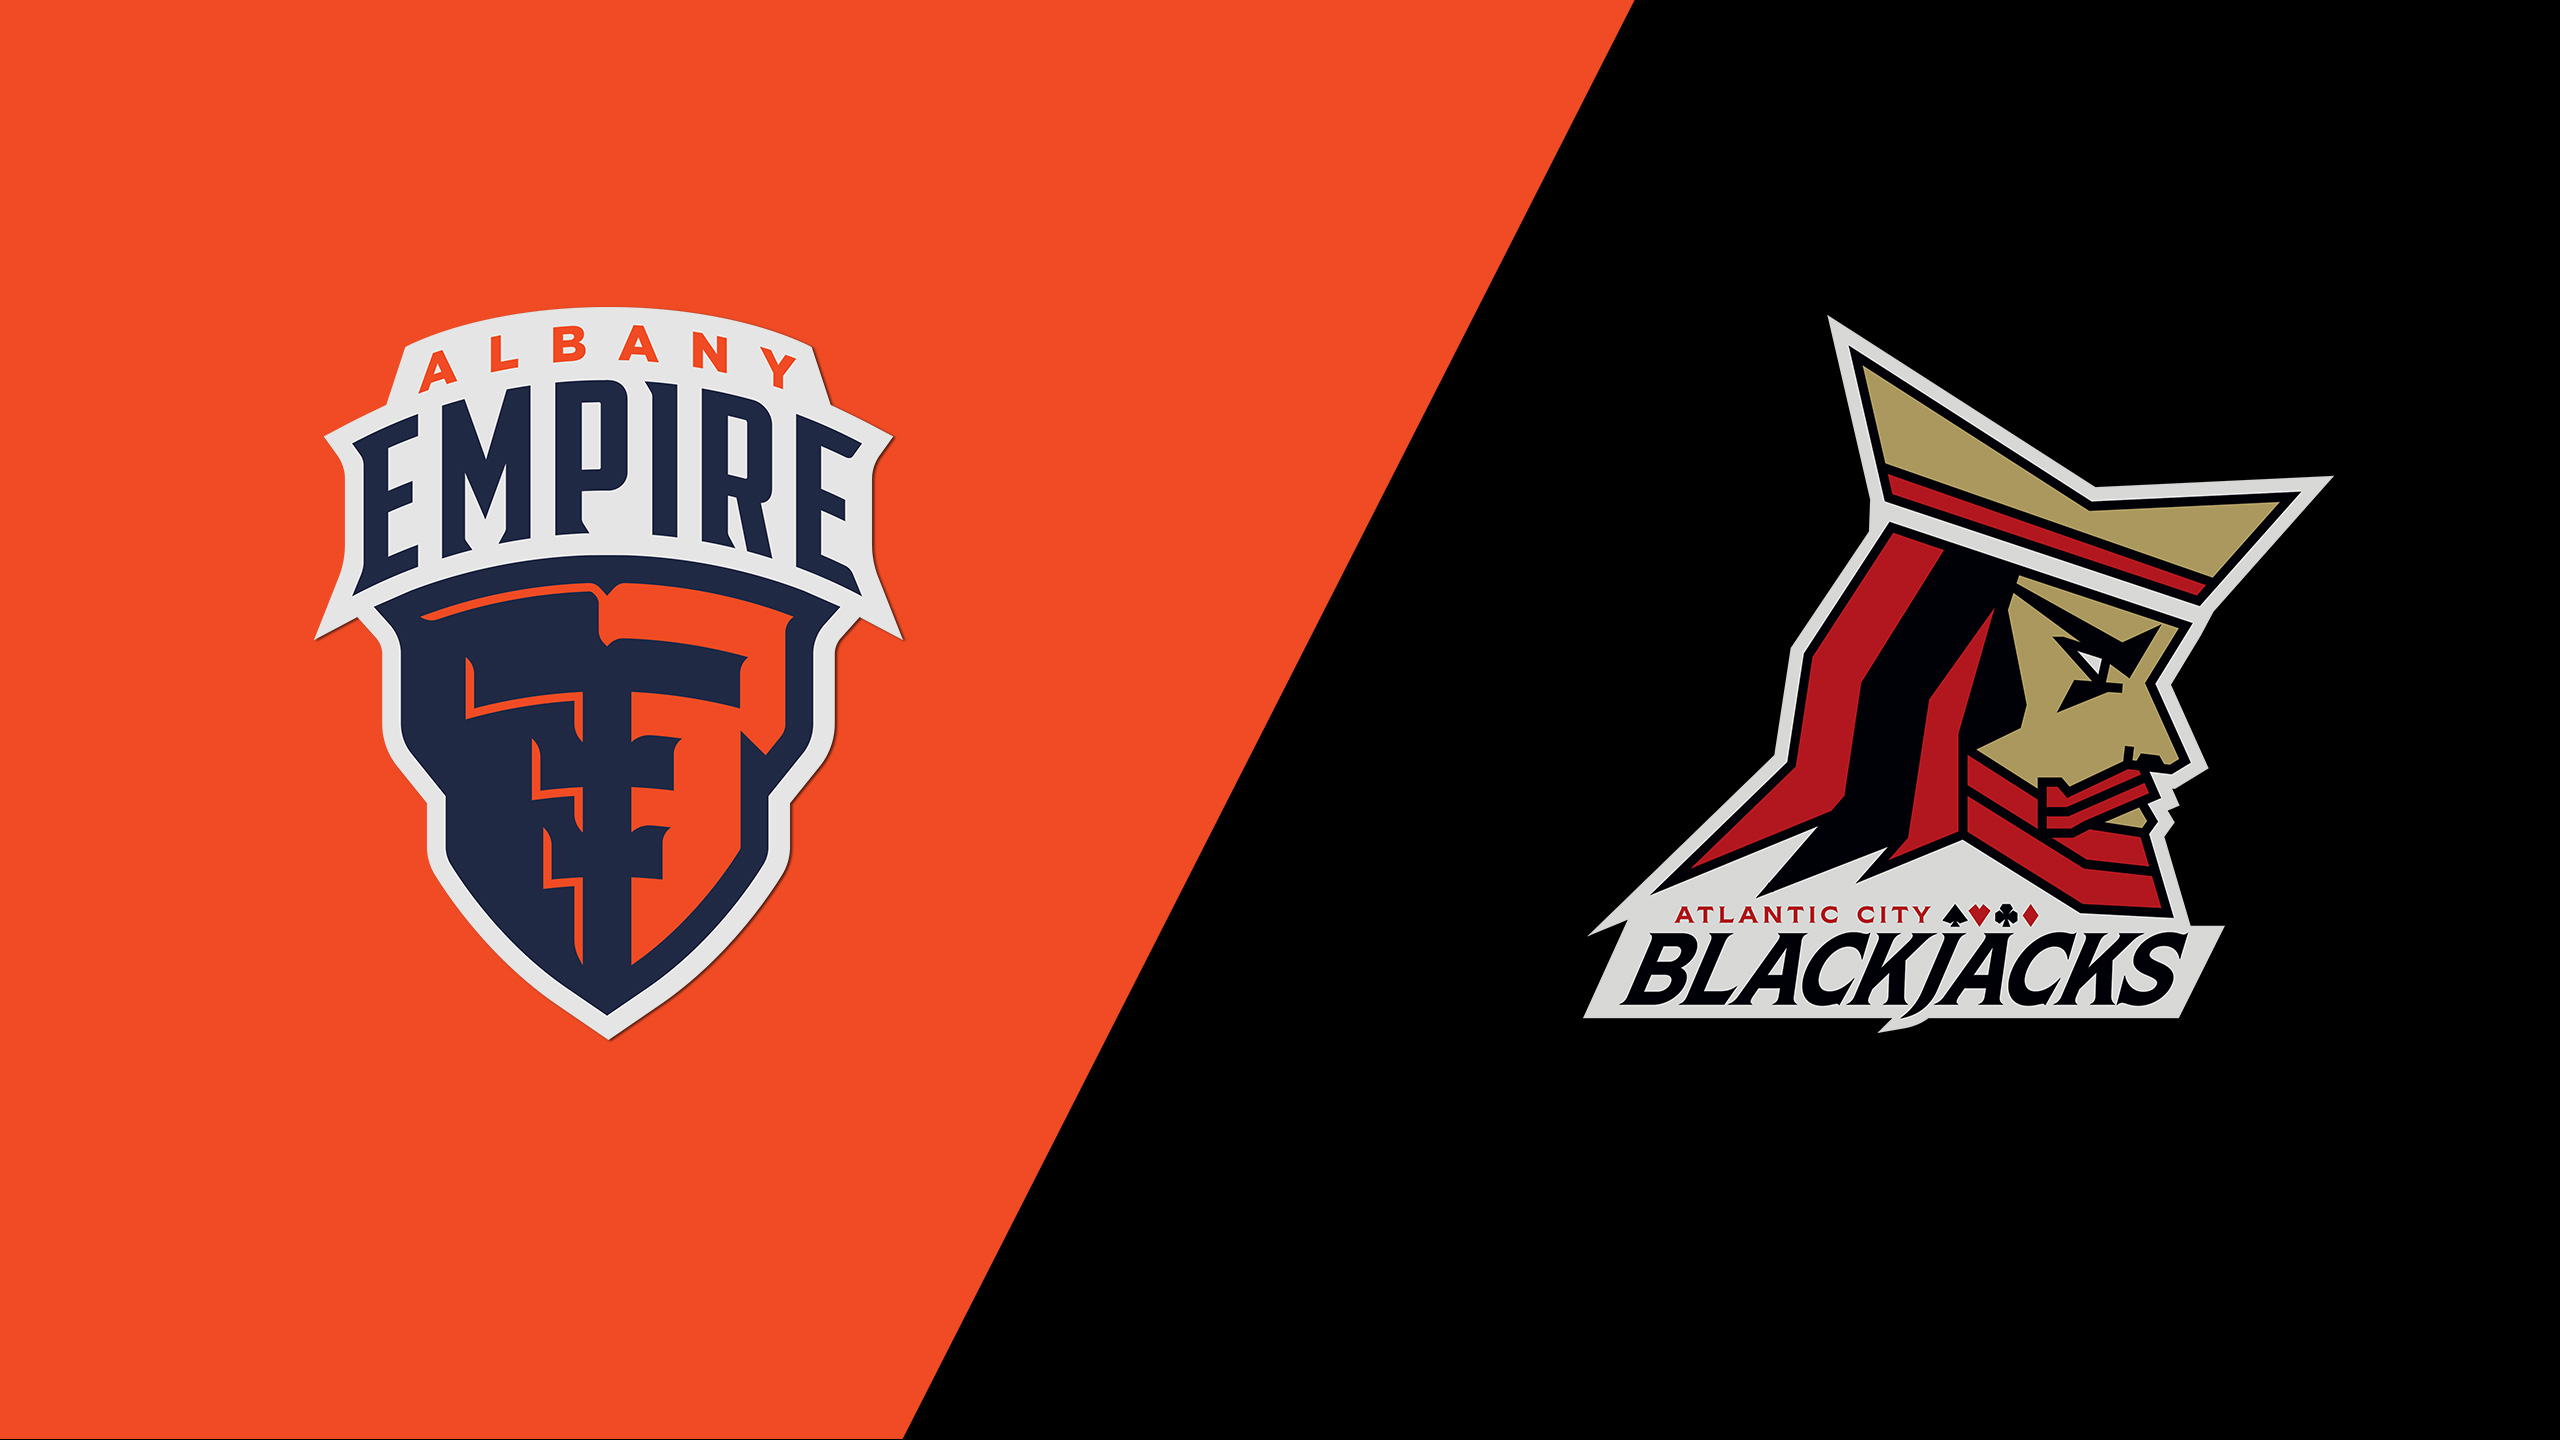 Albany Empire vs. Atlantic City Blackjacks